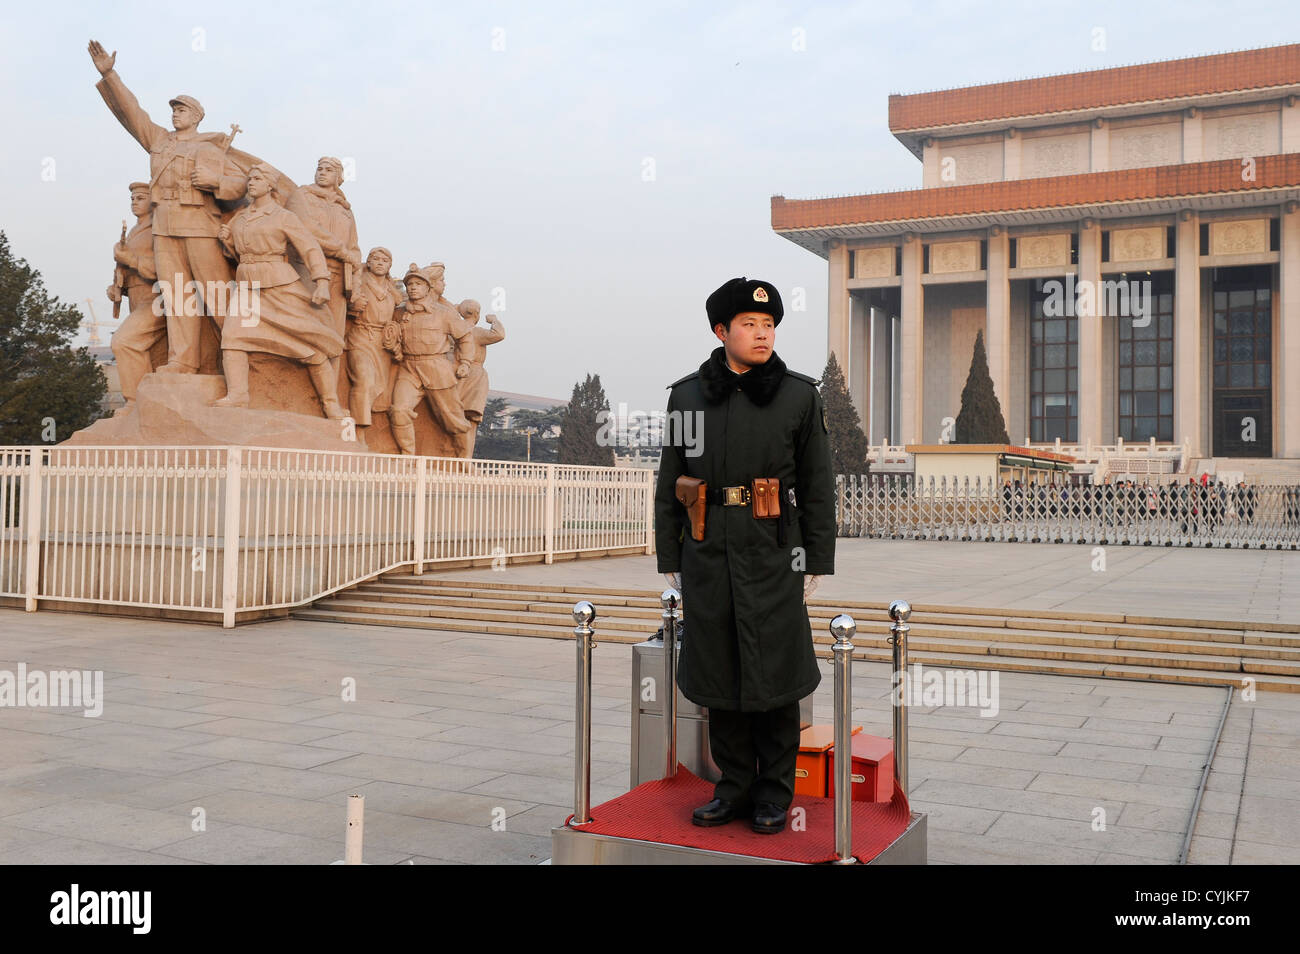 CHINA Beijing Tiananmen square, soldier in front of memorial for People's Heroes and great hall of the people Stock Photo